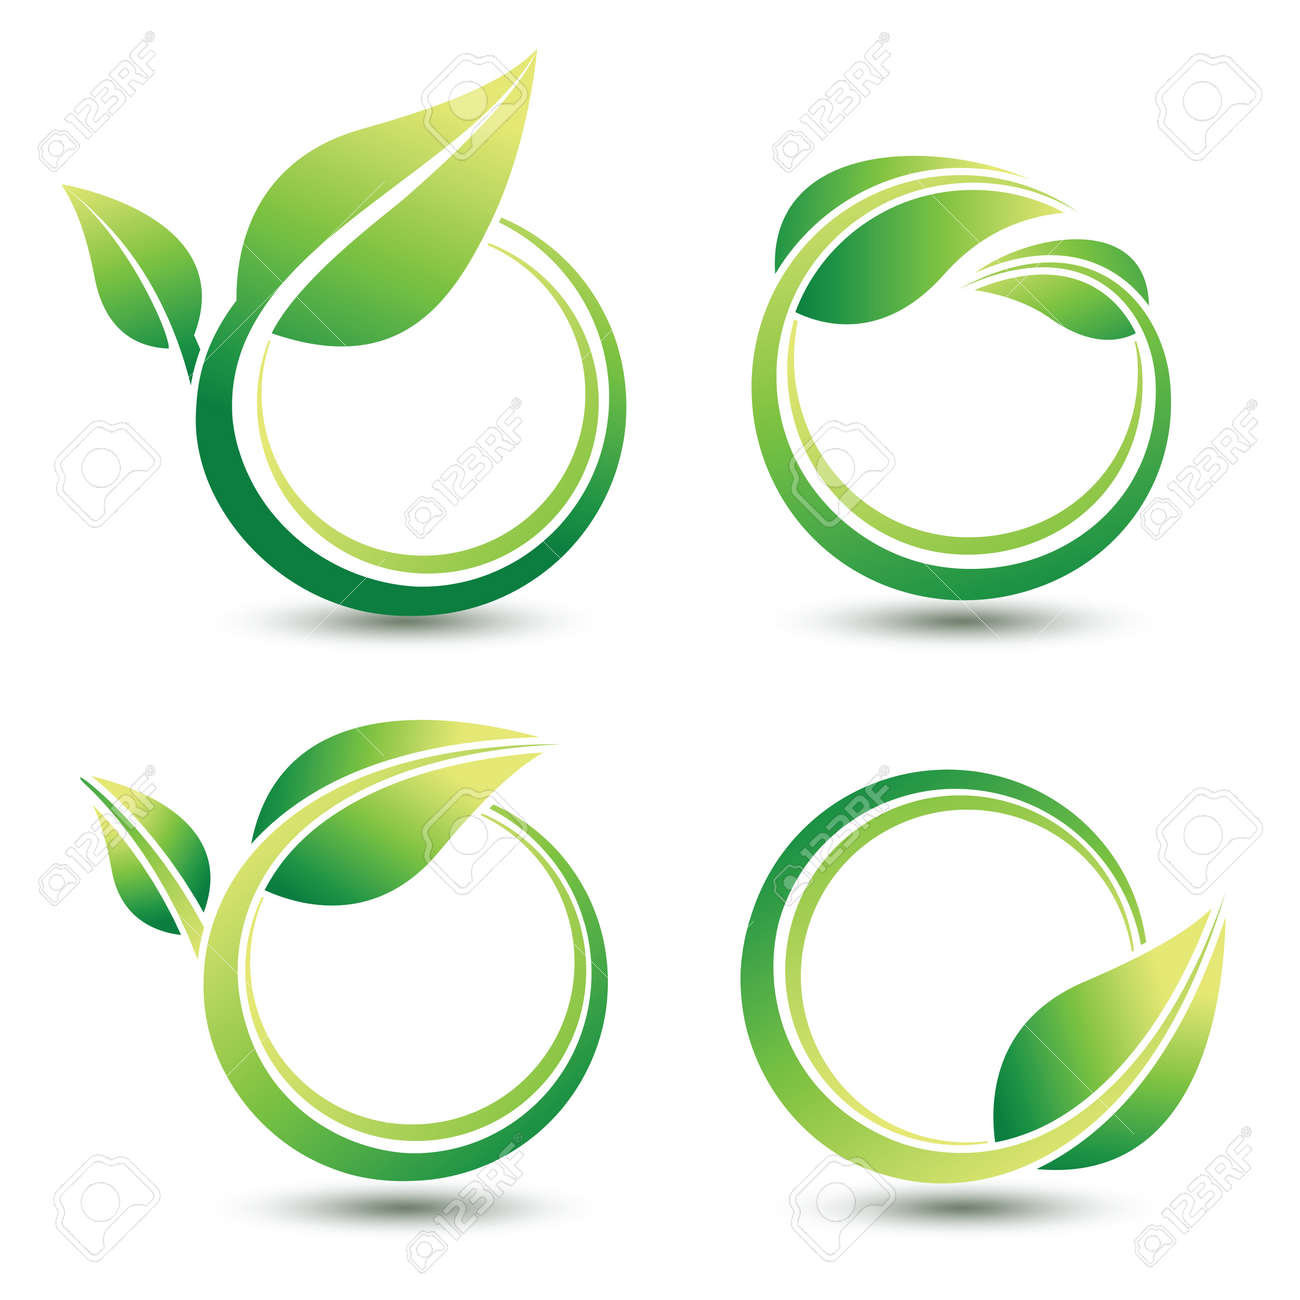 Green labels concept with leaves,illustration - 53375239